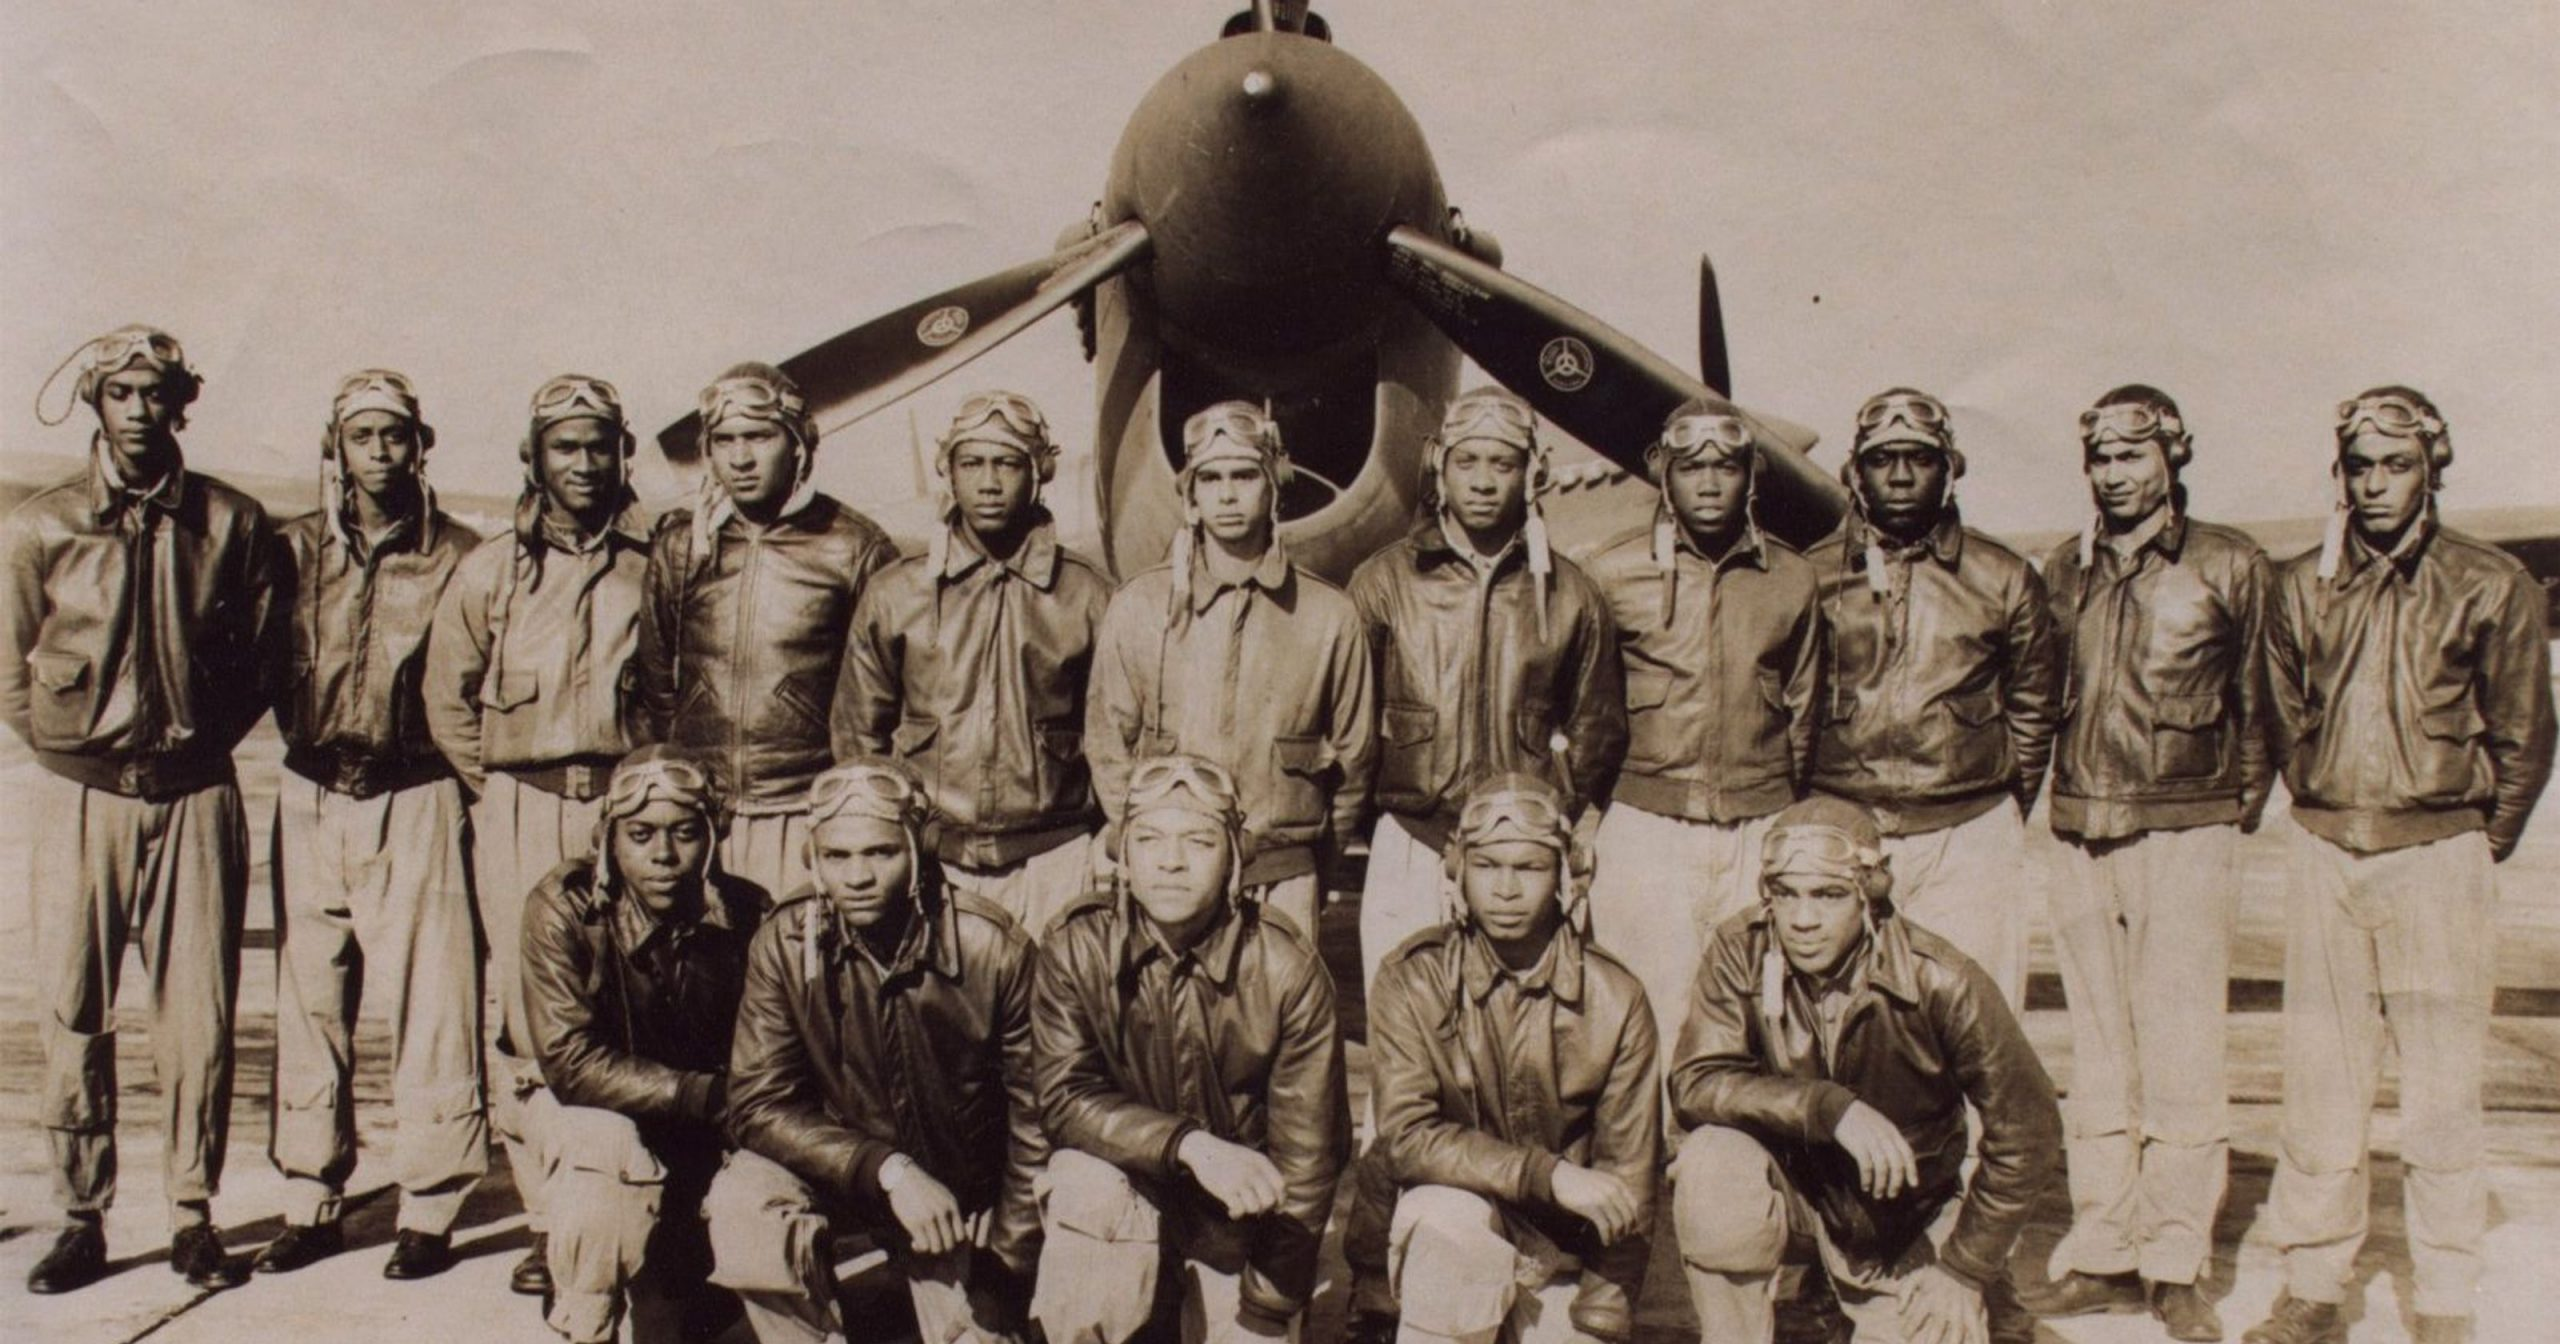 Tuskegee Airmen The African American Military Pilots Of